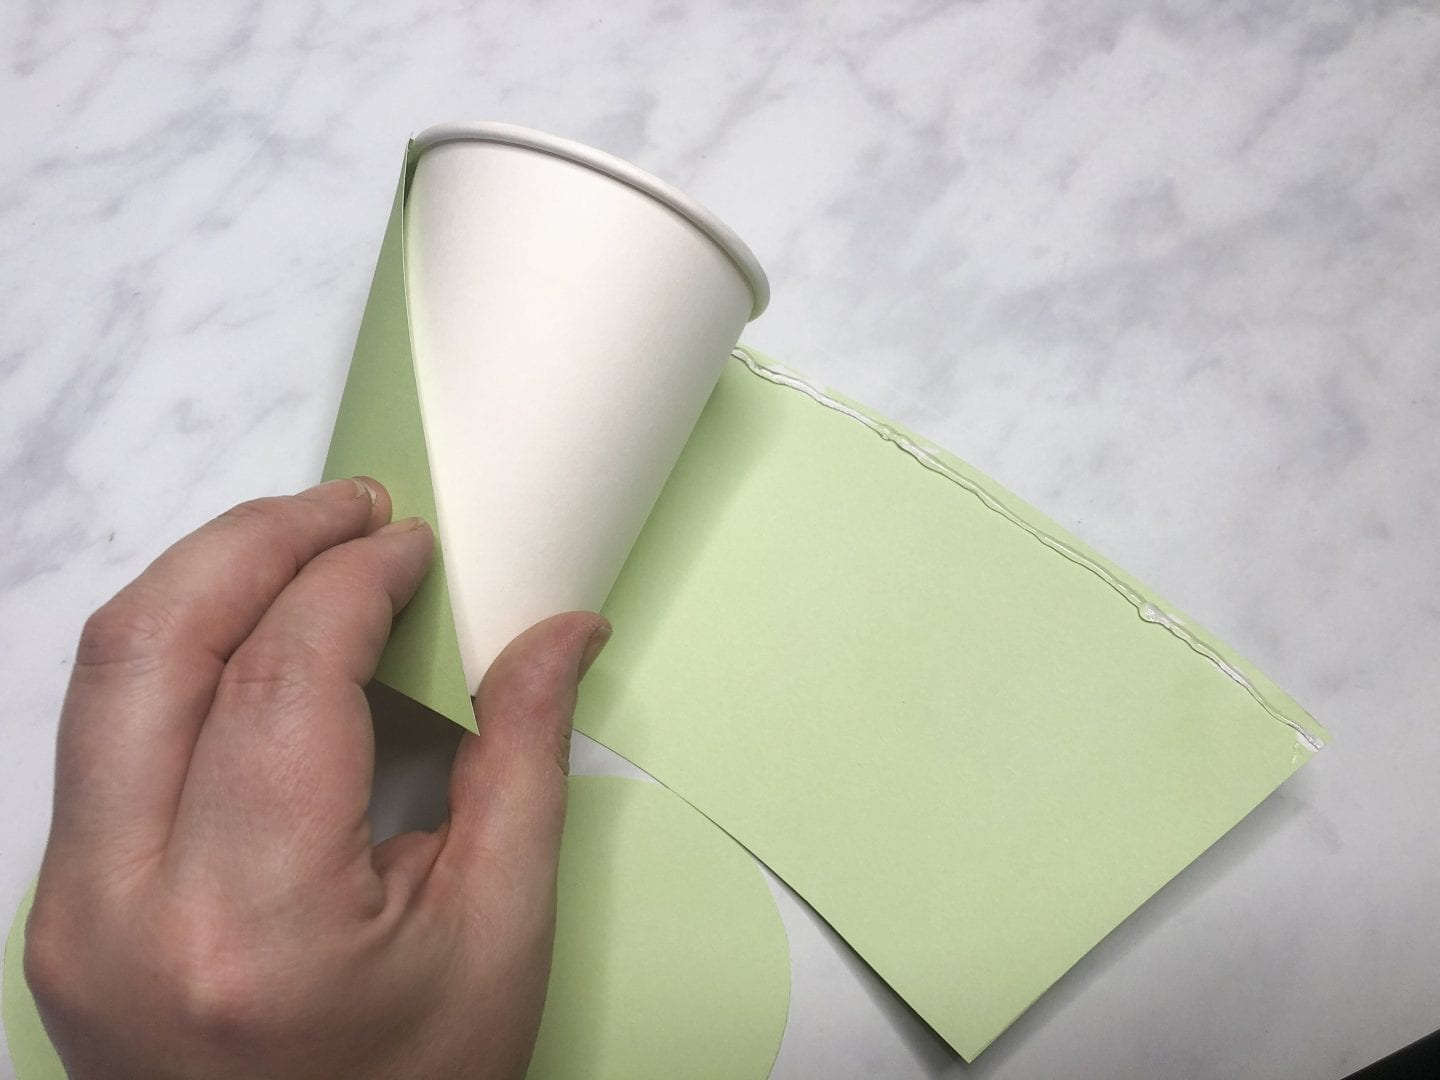 sticking the card shapes to the paper cup to cover it.